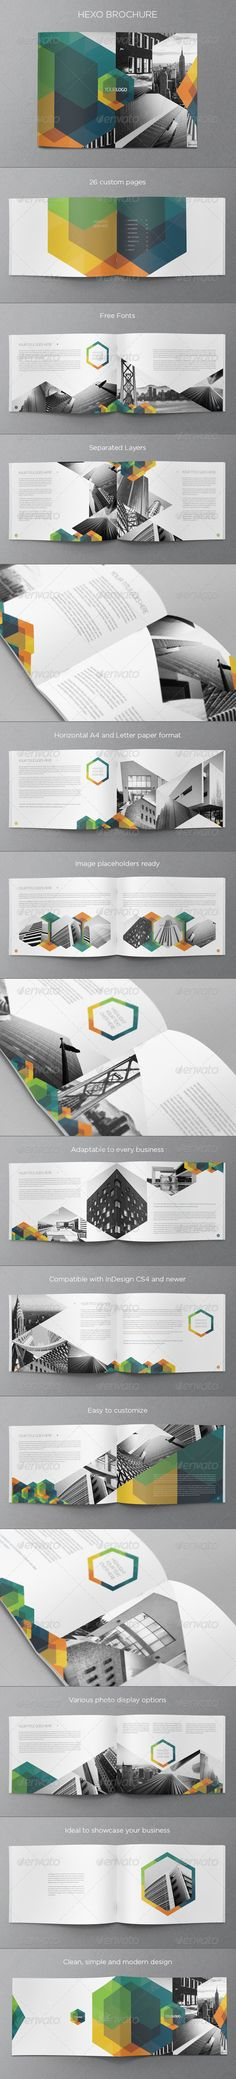 Modern Real Estate Hexo Brochure - Brochures Print Templates